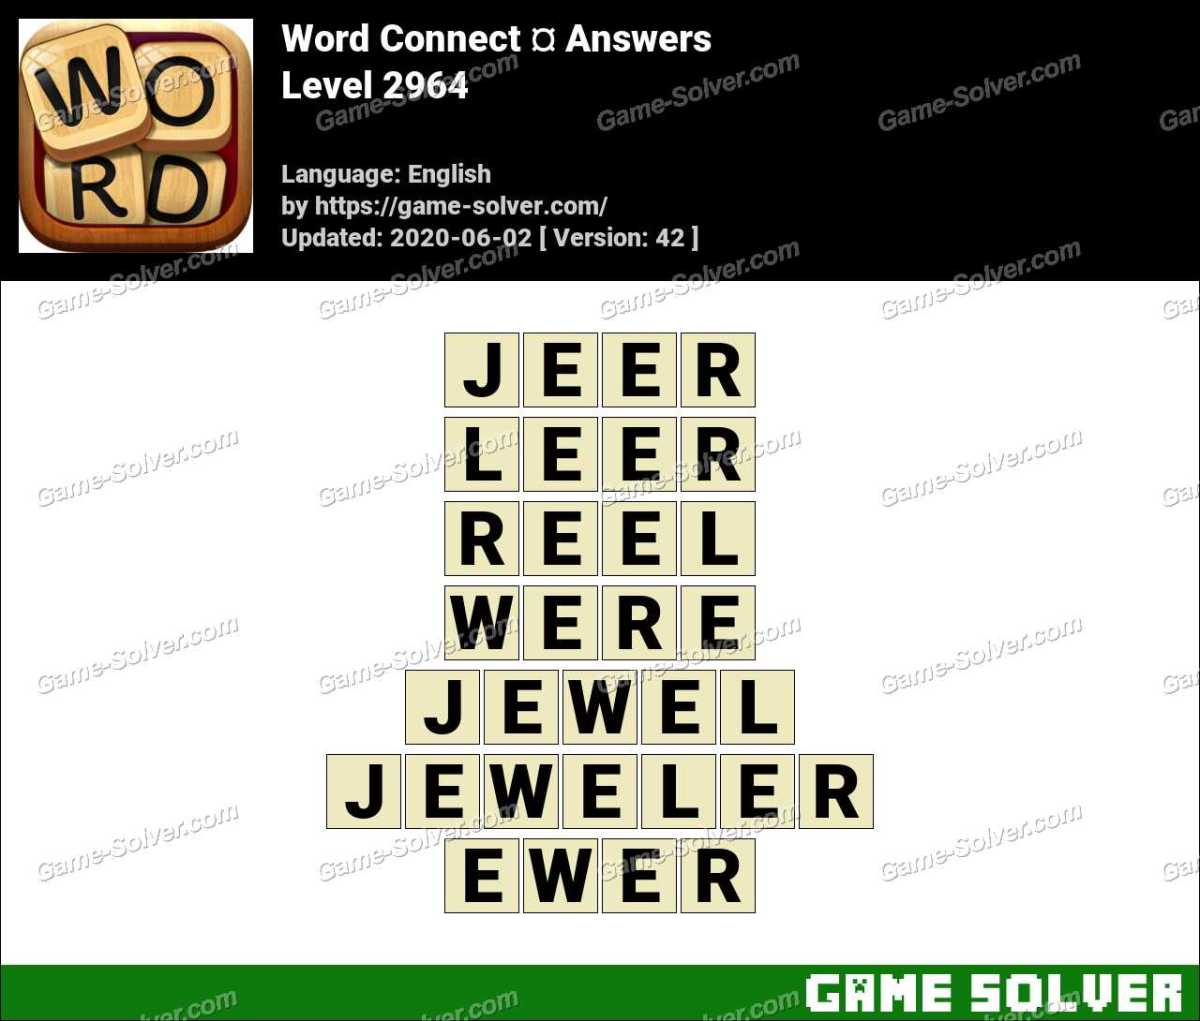 Word Connect Level 2964 Answers